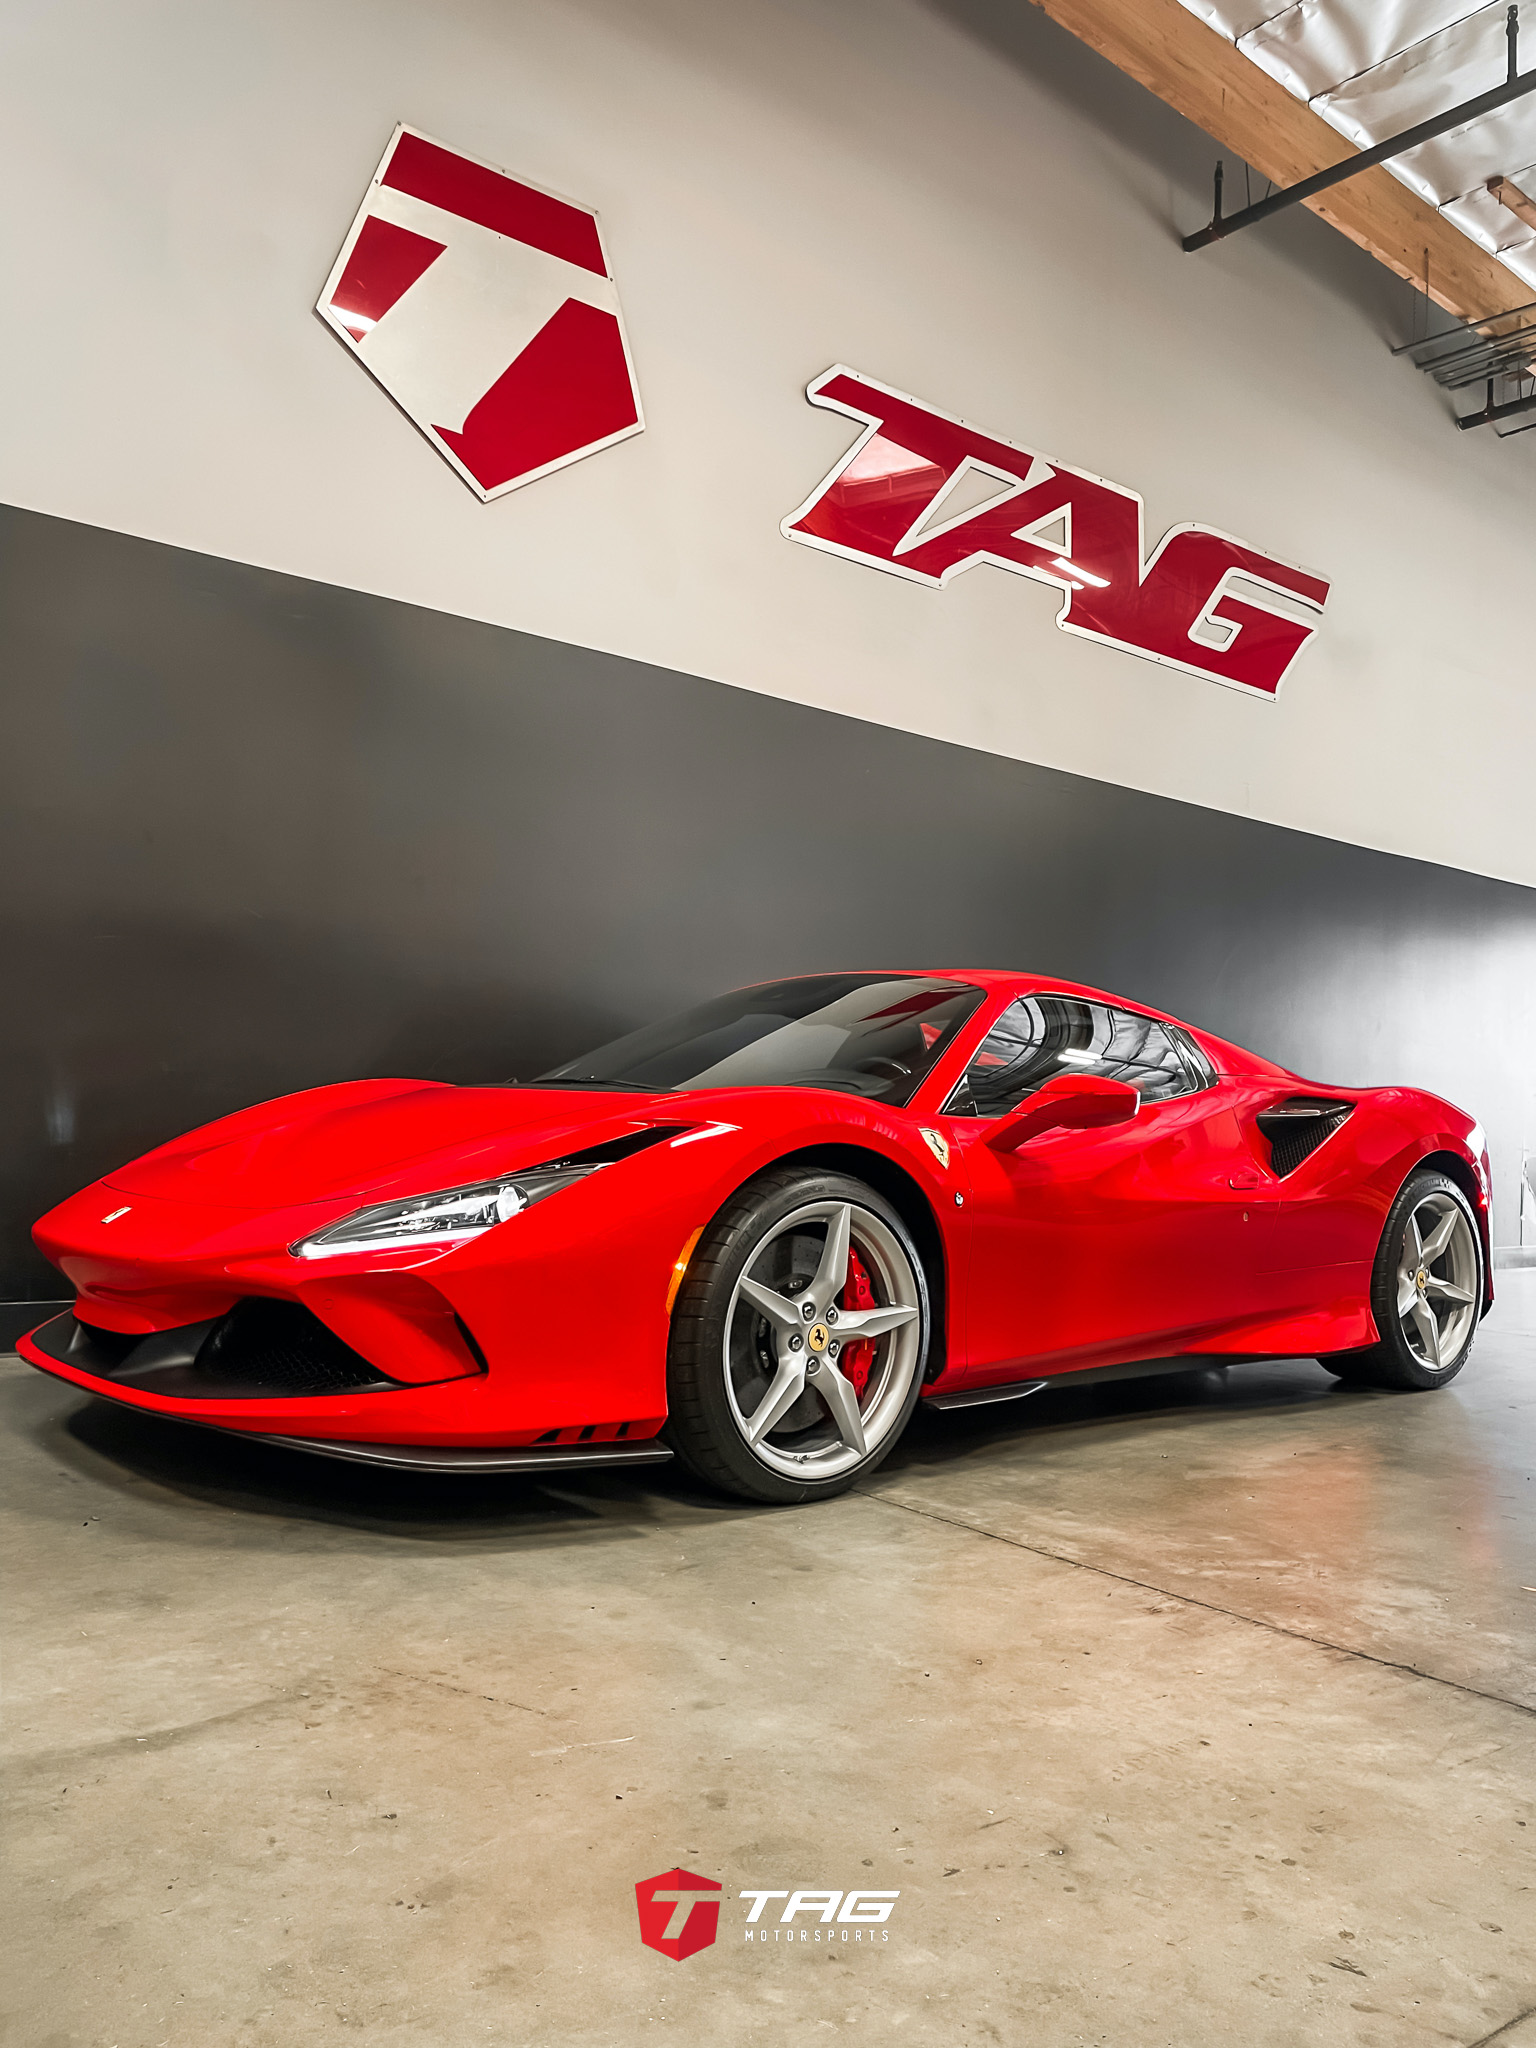 TAG MOTORSPORTS NEW F8 SPIDER PROJECT IS HERE!